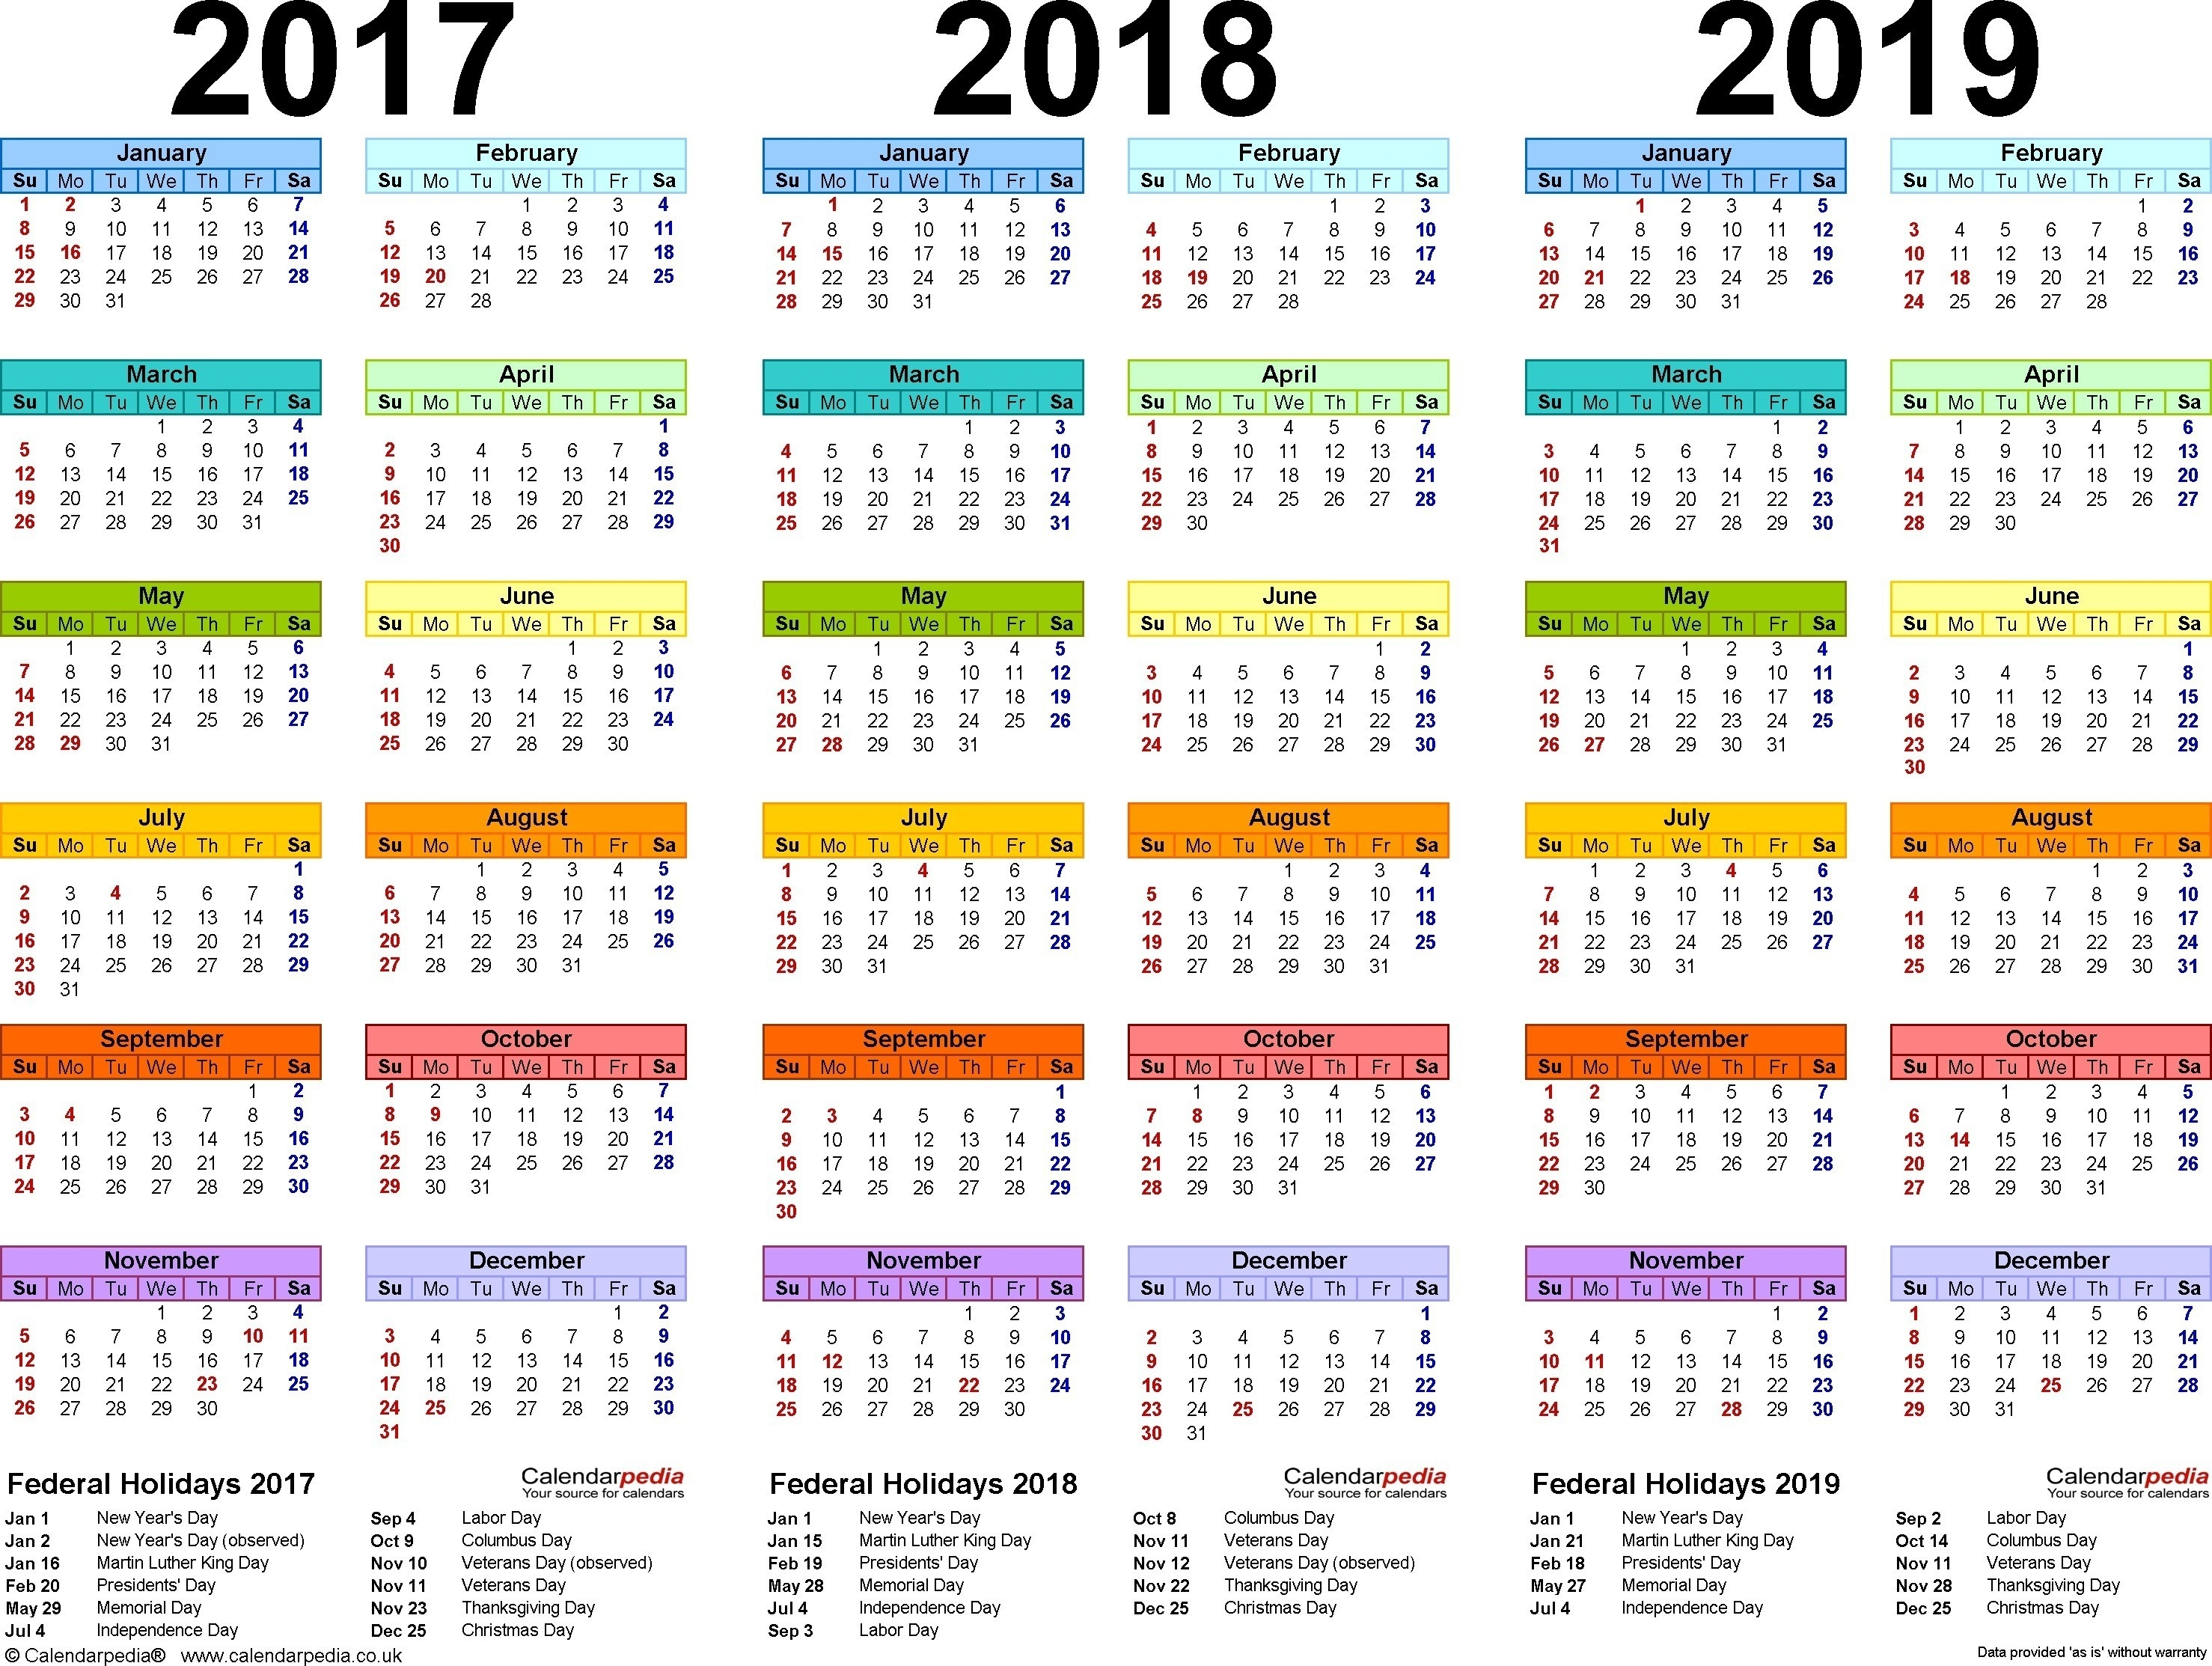 Depo Provera Calendar 2019 Printable Download For Free  Depo Provera Printable Calendar 2020